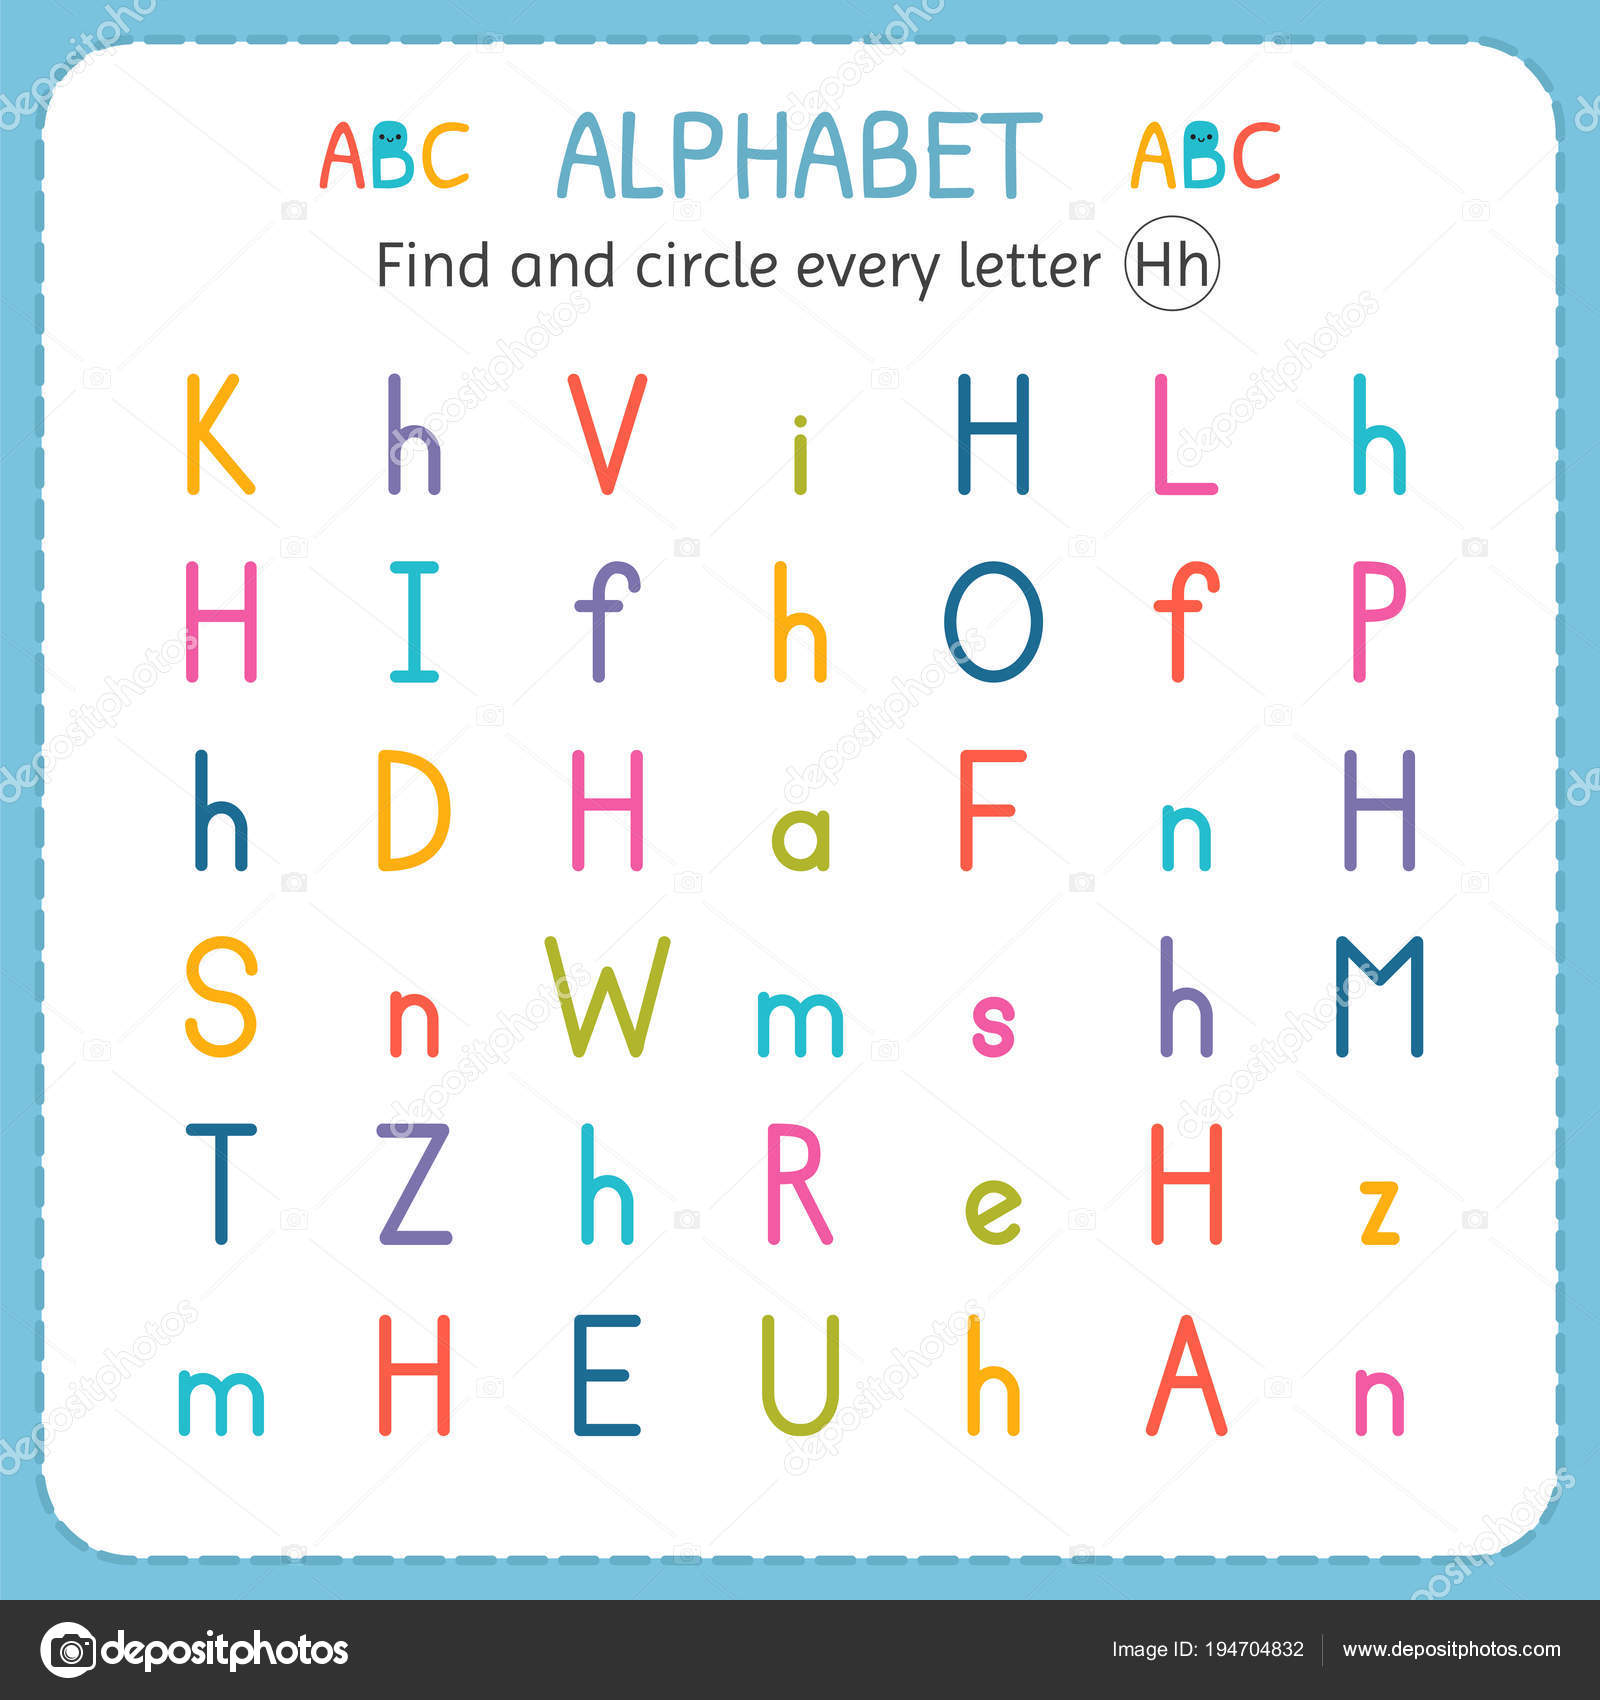 Find And Circle Every Letter H Worksheet For Kindergarten And Preschool Exercises For Children